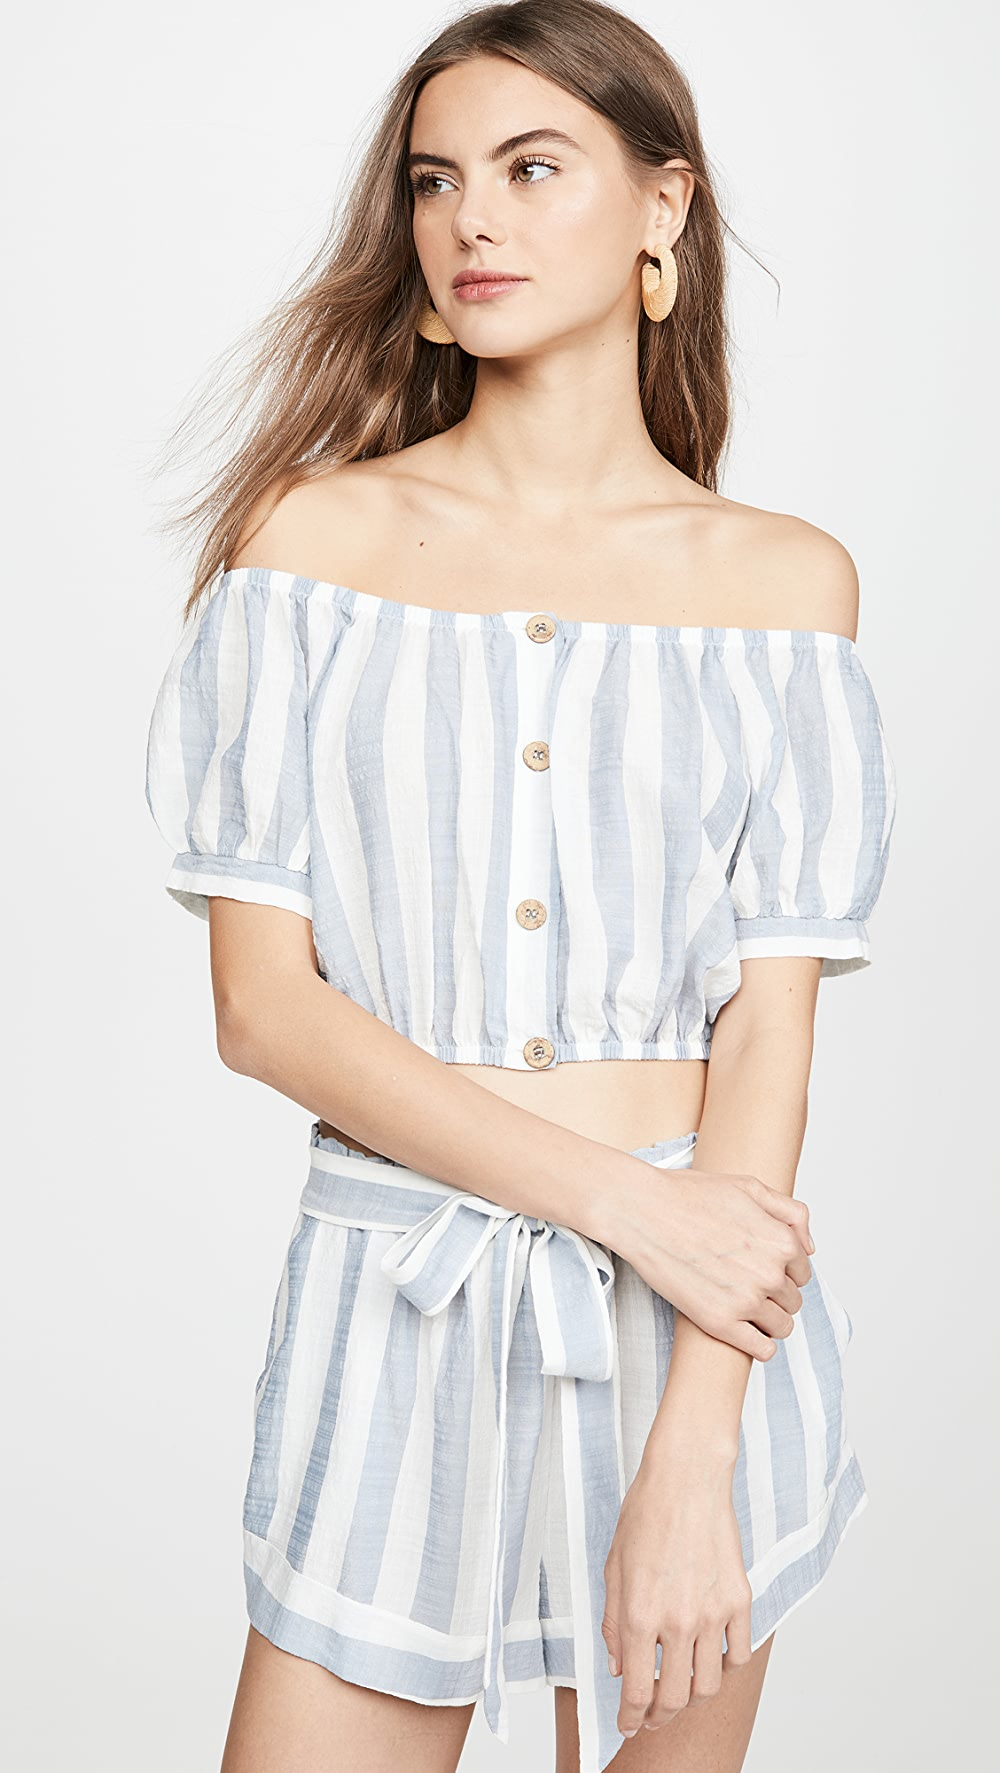 2019 New Style Eberjey - Umbrella Stripe Harper Top We Have Won Praise From Customers